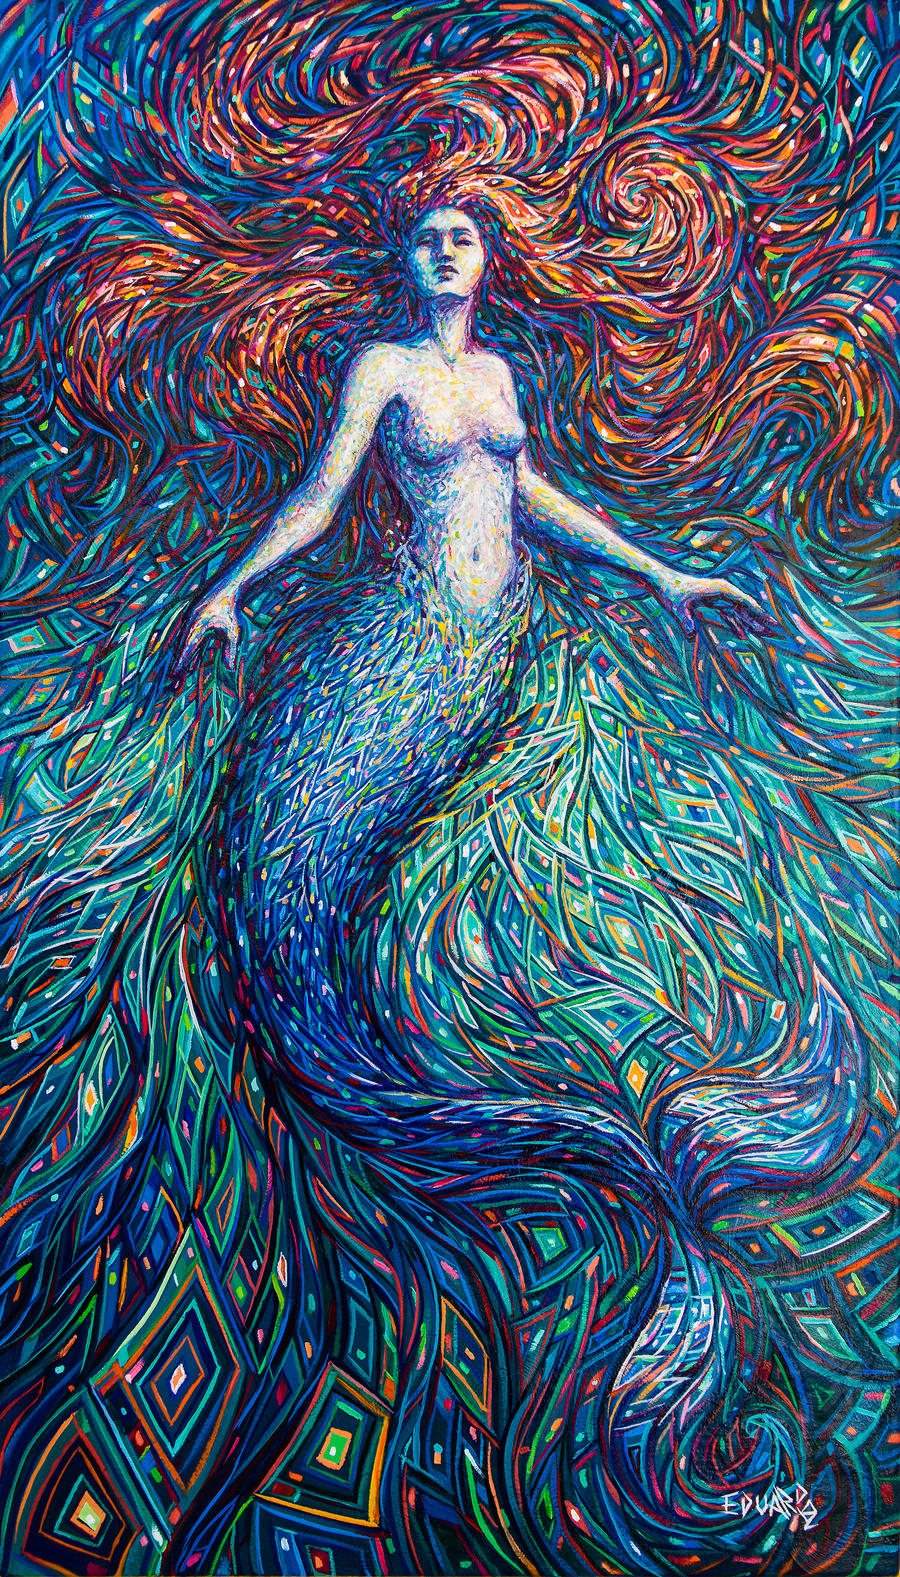 Mermaid by eddiecalz on DeviantArt